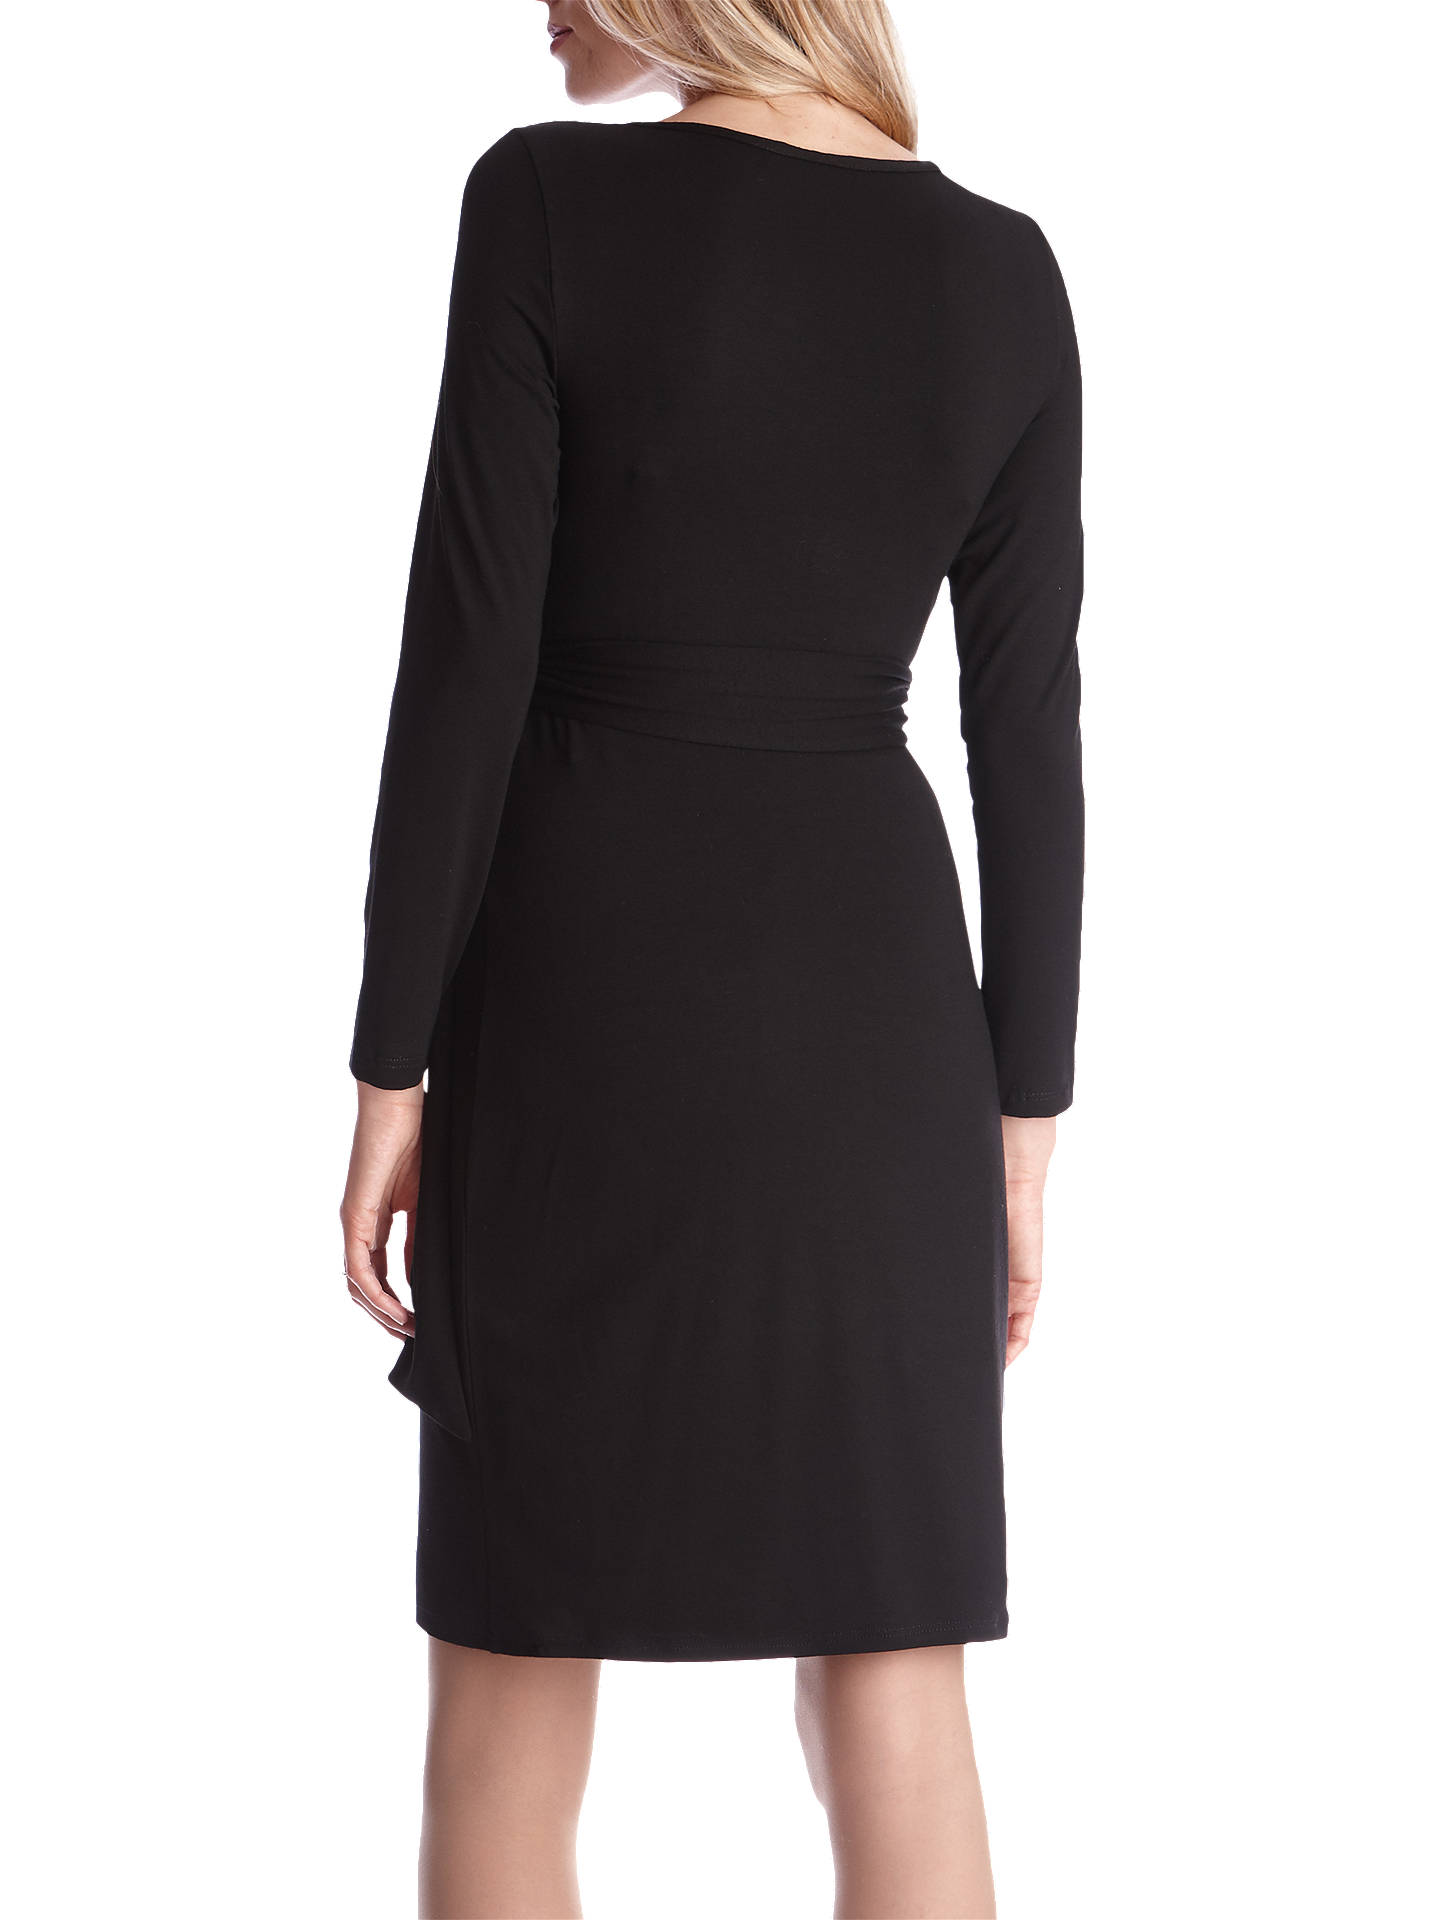 ae7e9b4dfb24d ... Buy Séraphine Tiana Maternity Tie Dress, Black, 8 Online at  johnlewis.com